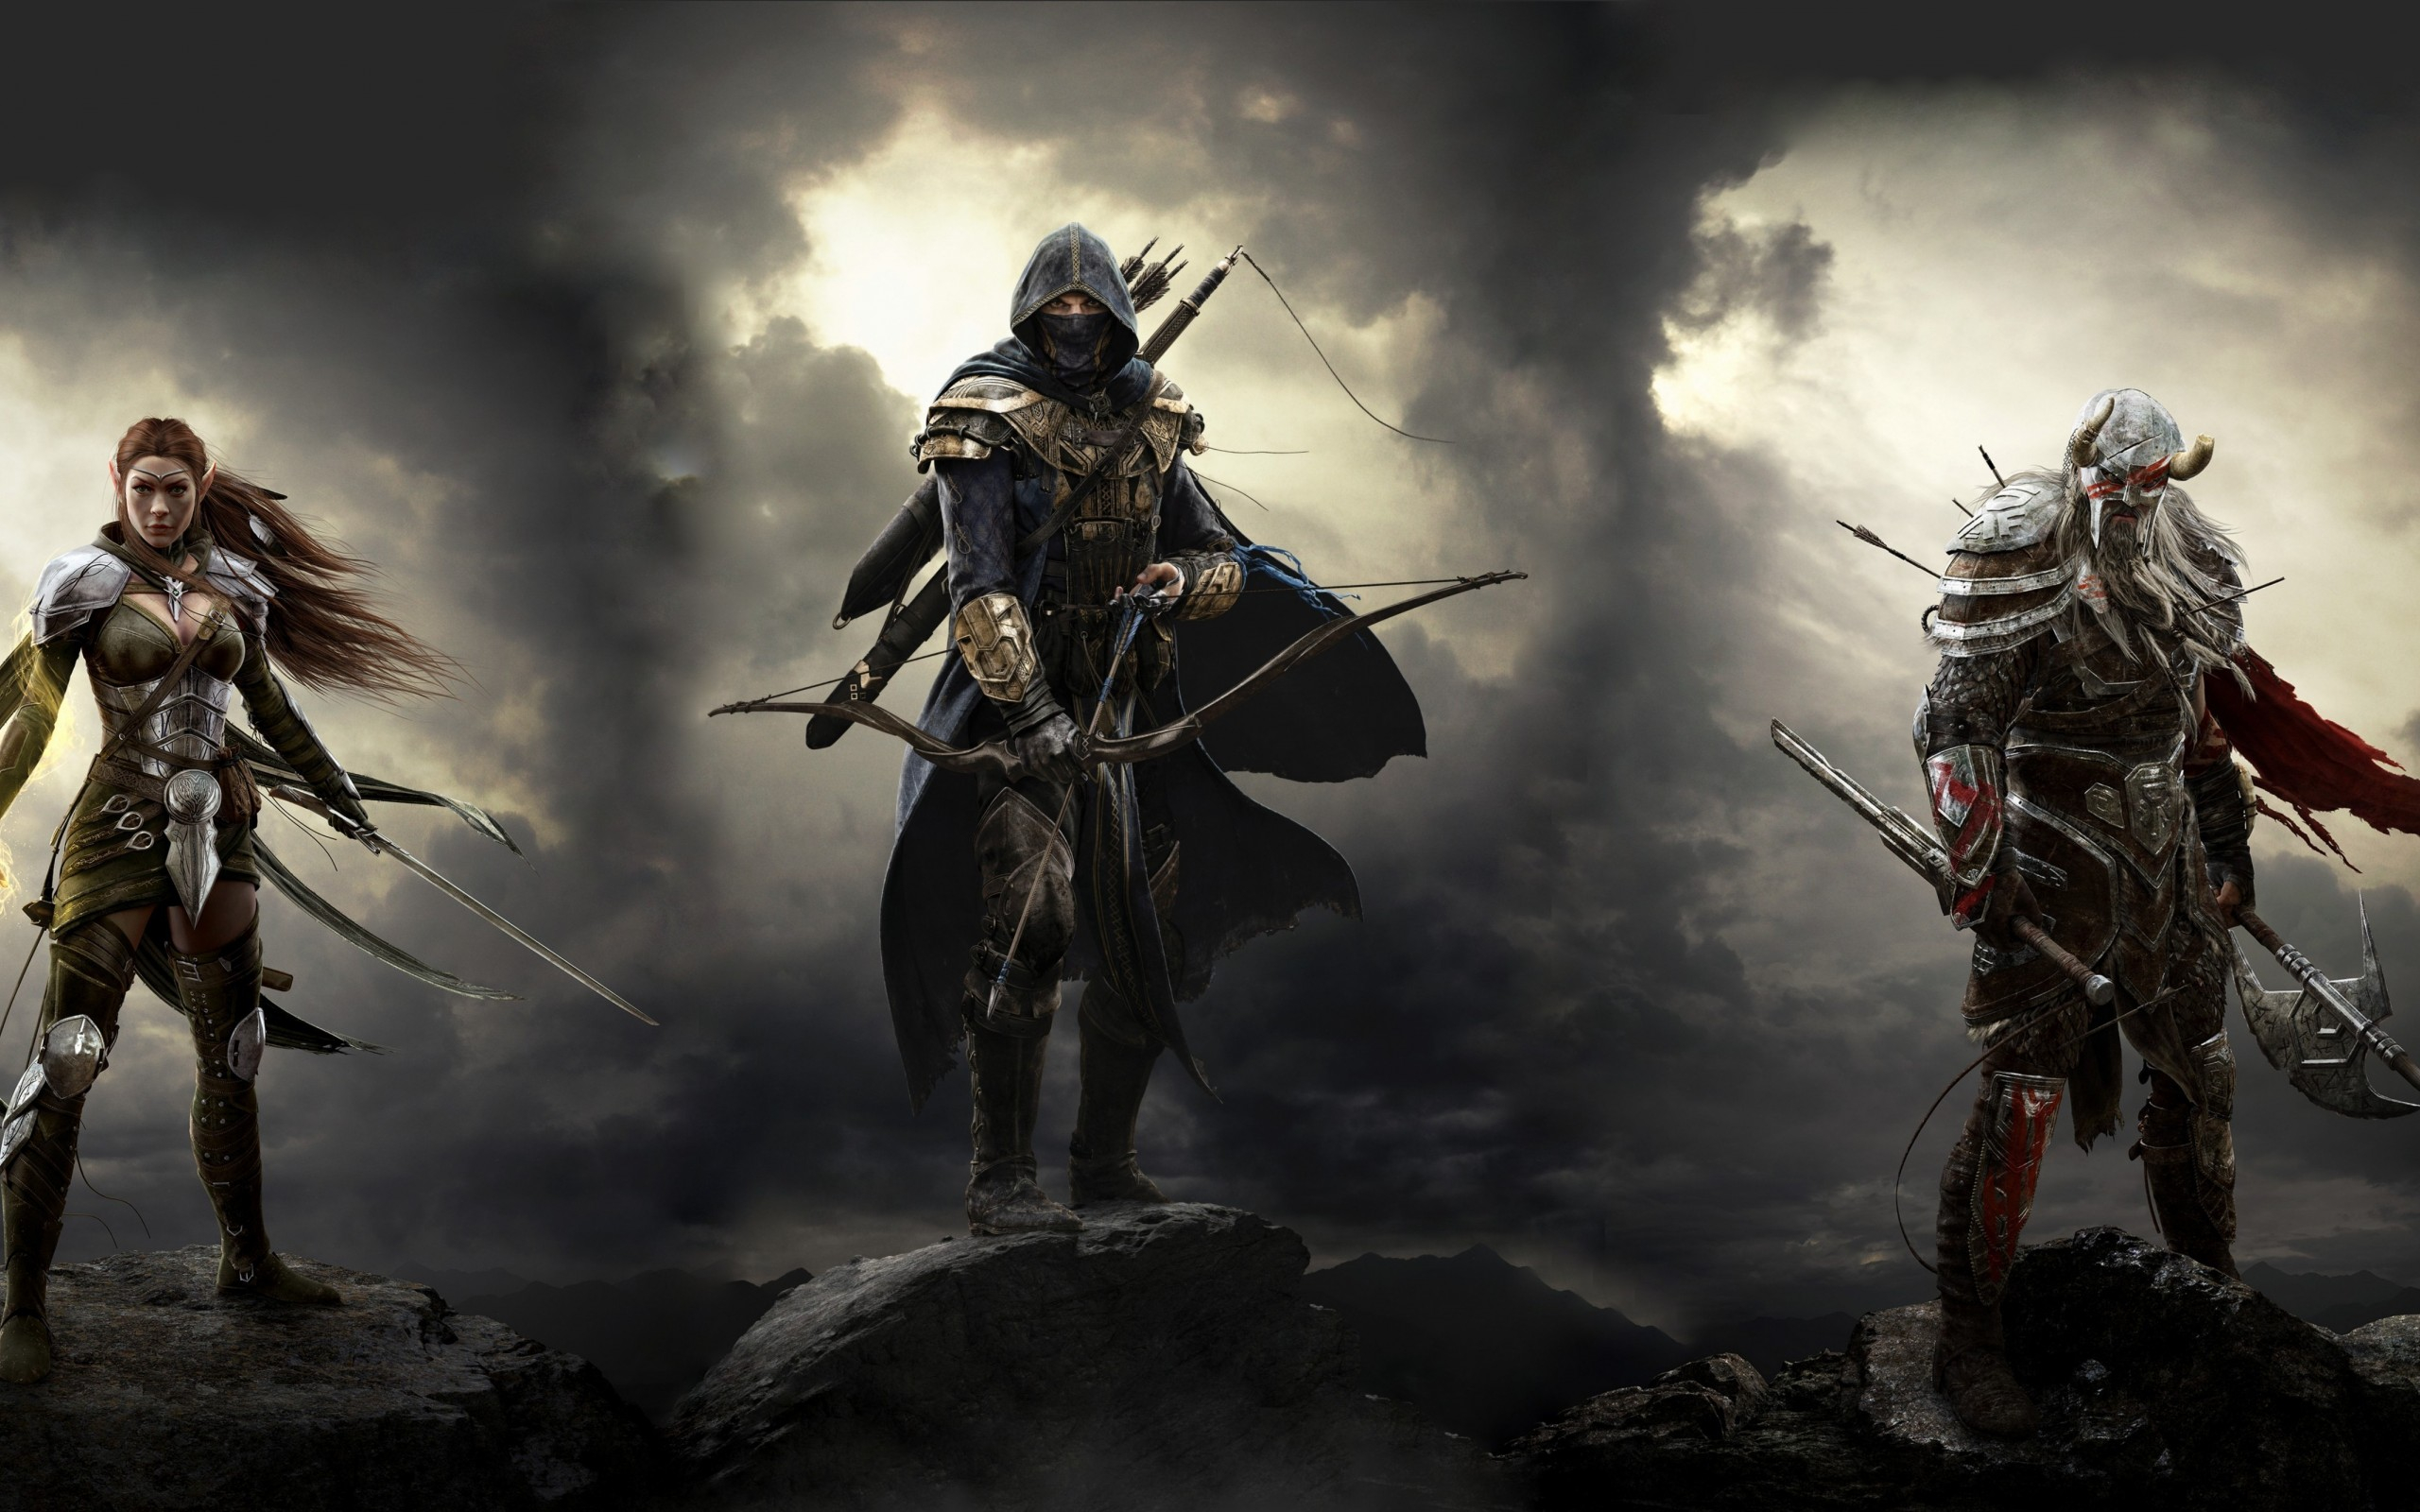 hd wallpaper background image id 533756 2560x1600 video game the elder scrolls online